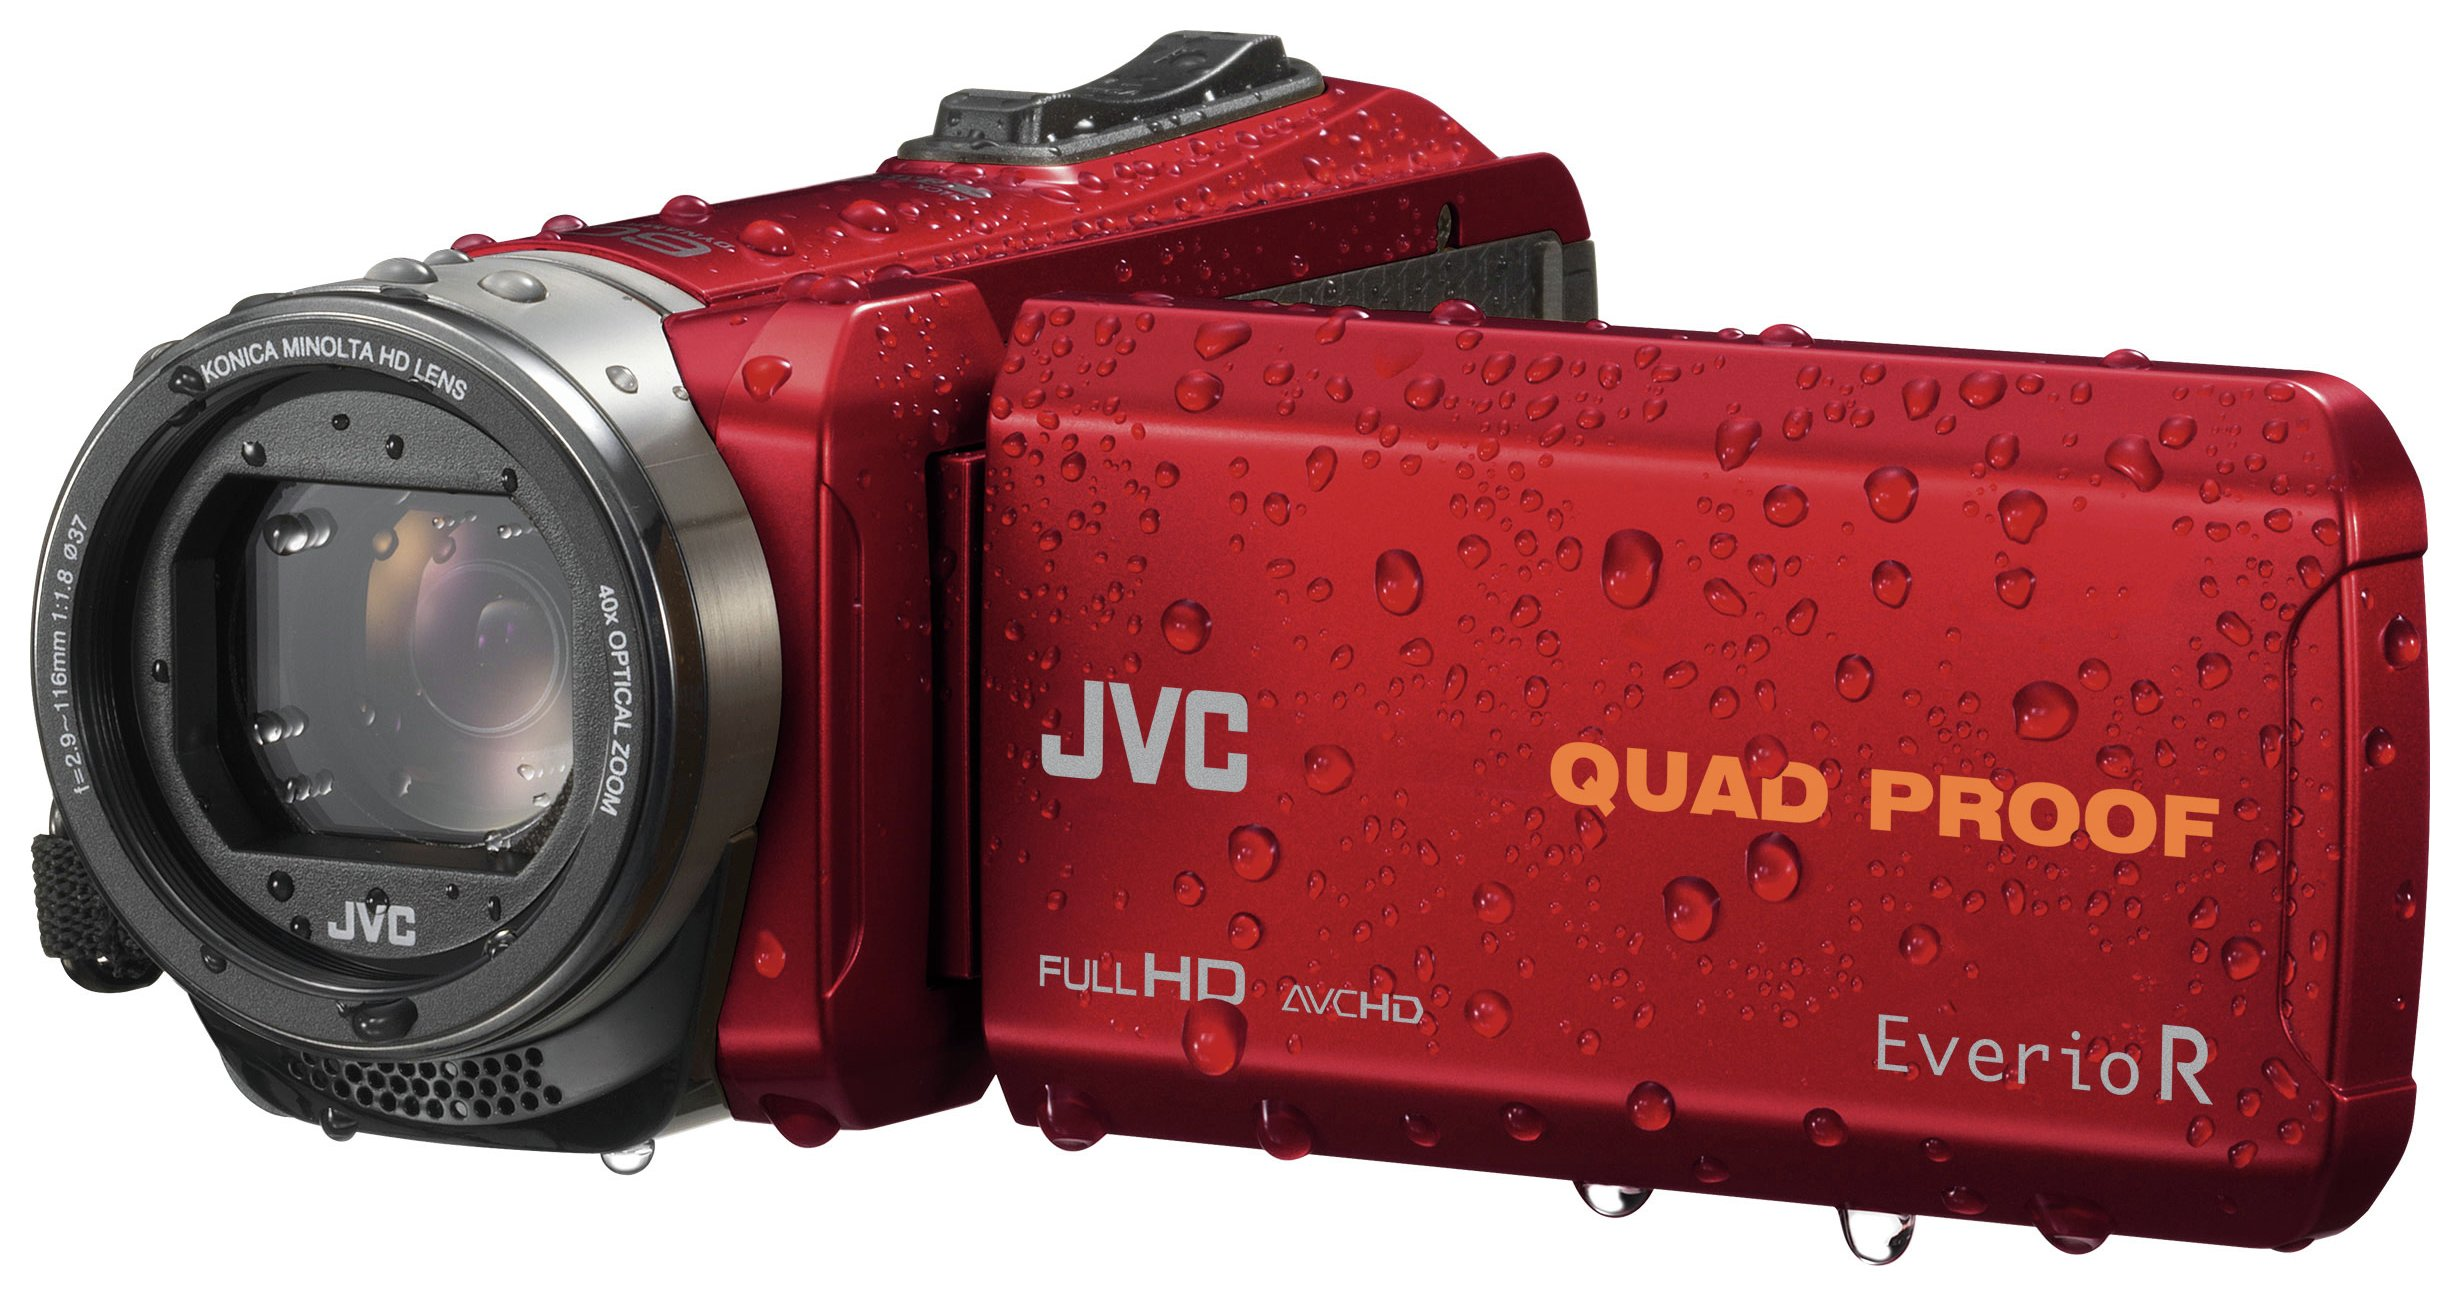 JVC GZ-R435 Full HD Camcorder - Red.